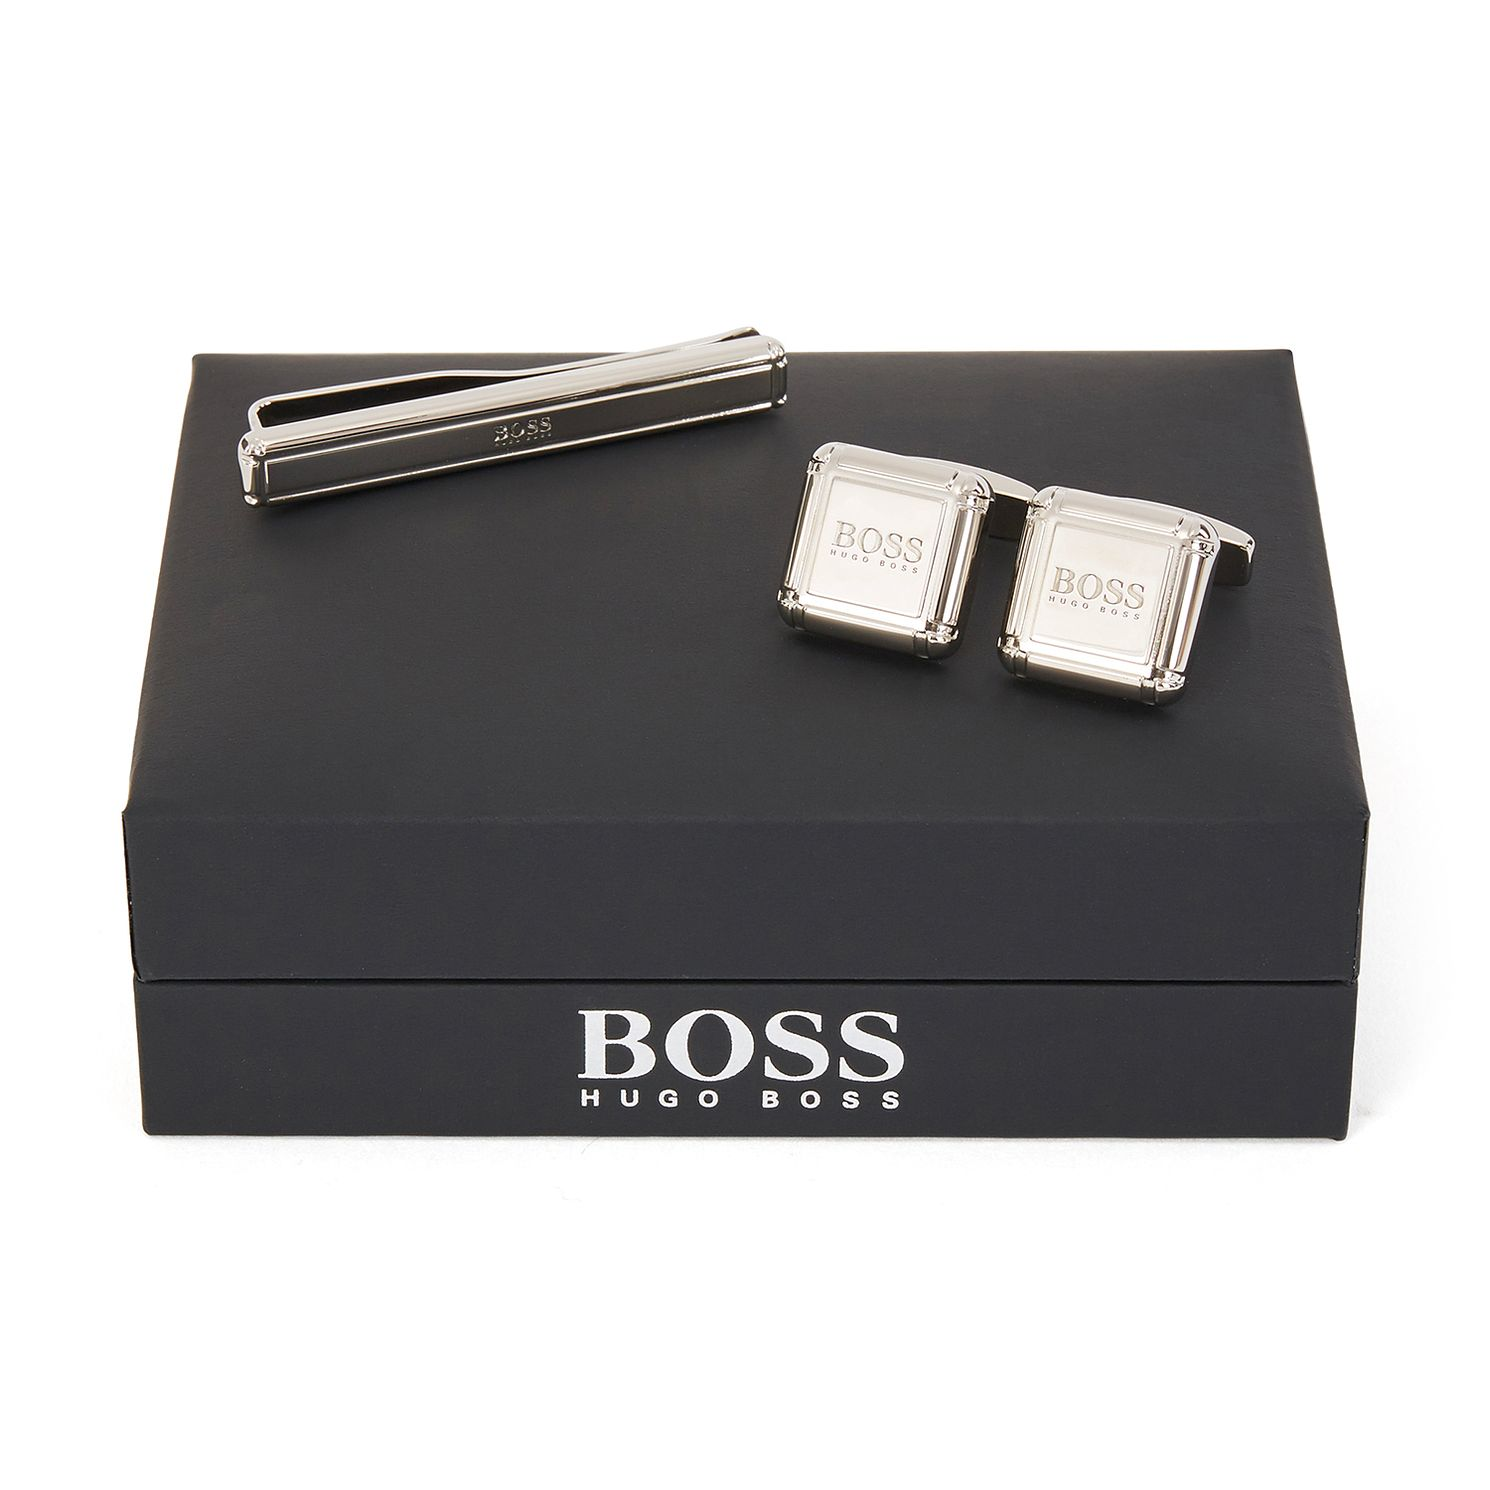 BOSS River Men's Silver Tone Tie Clip & Cufflinks Gift Set - Product number 1008706